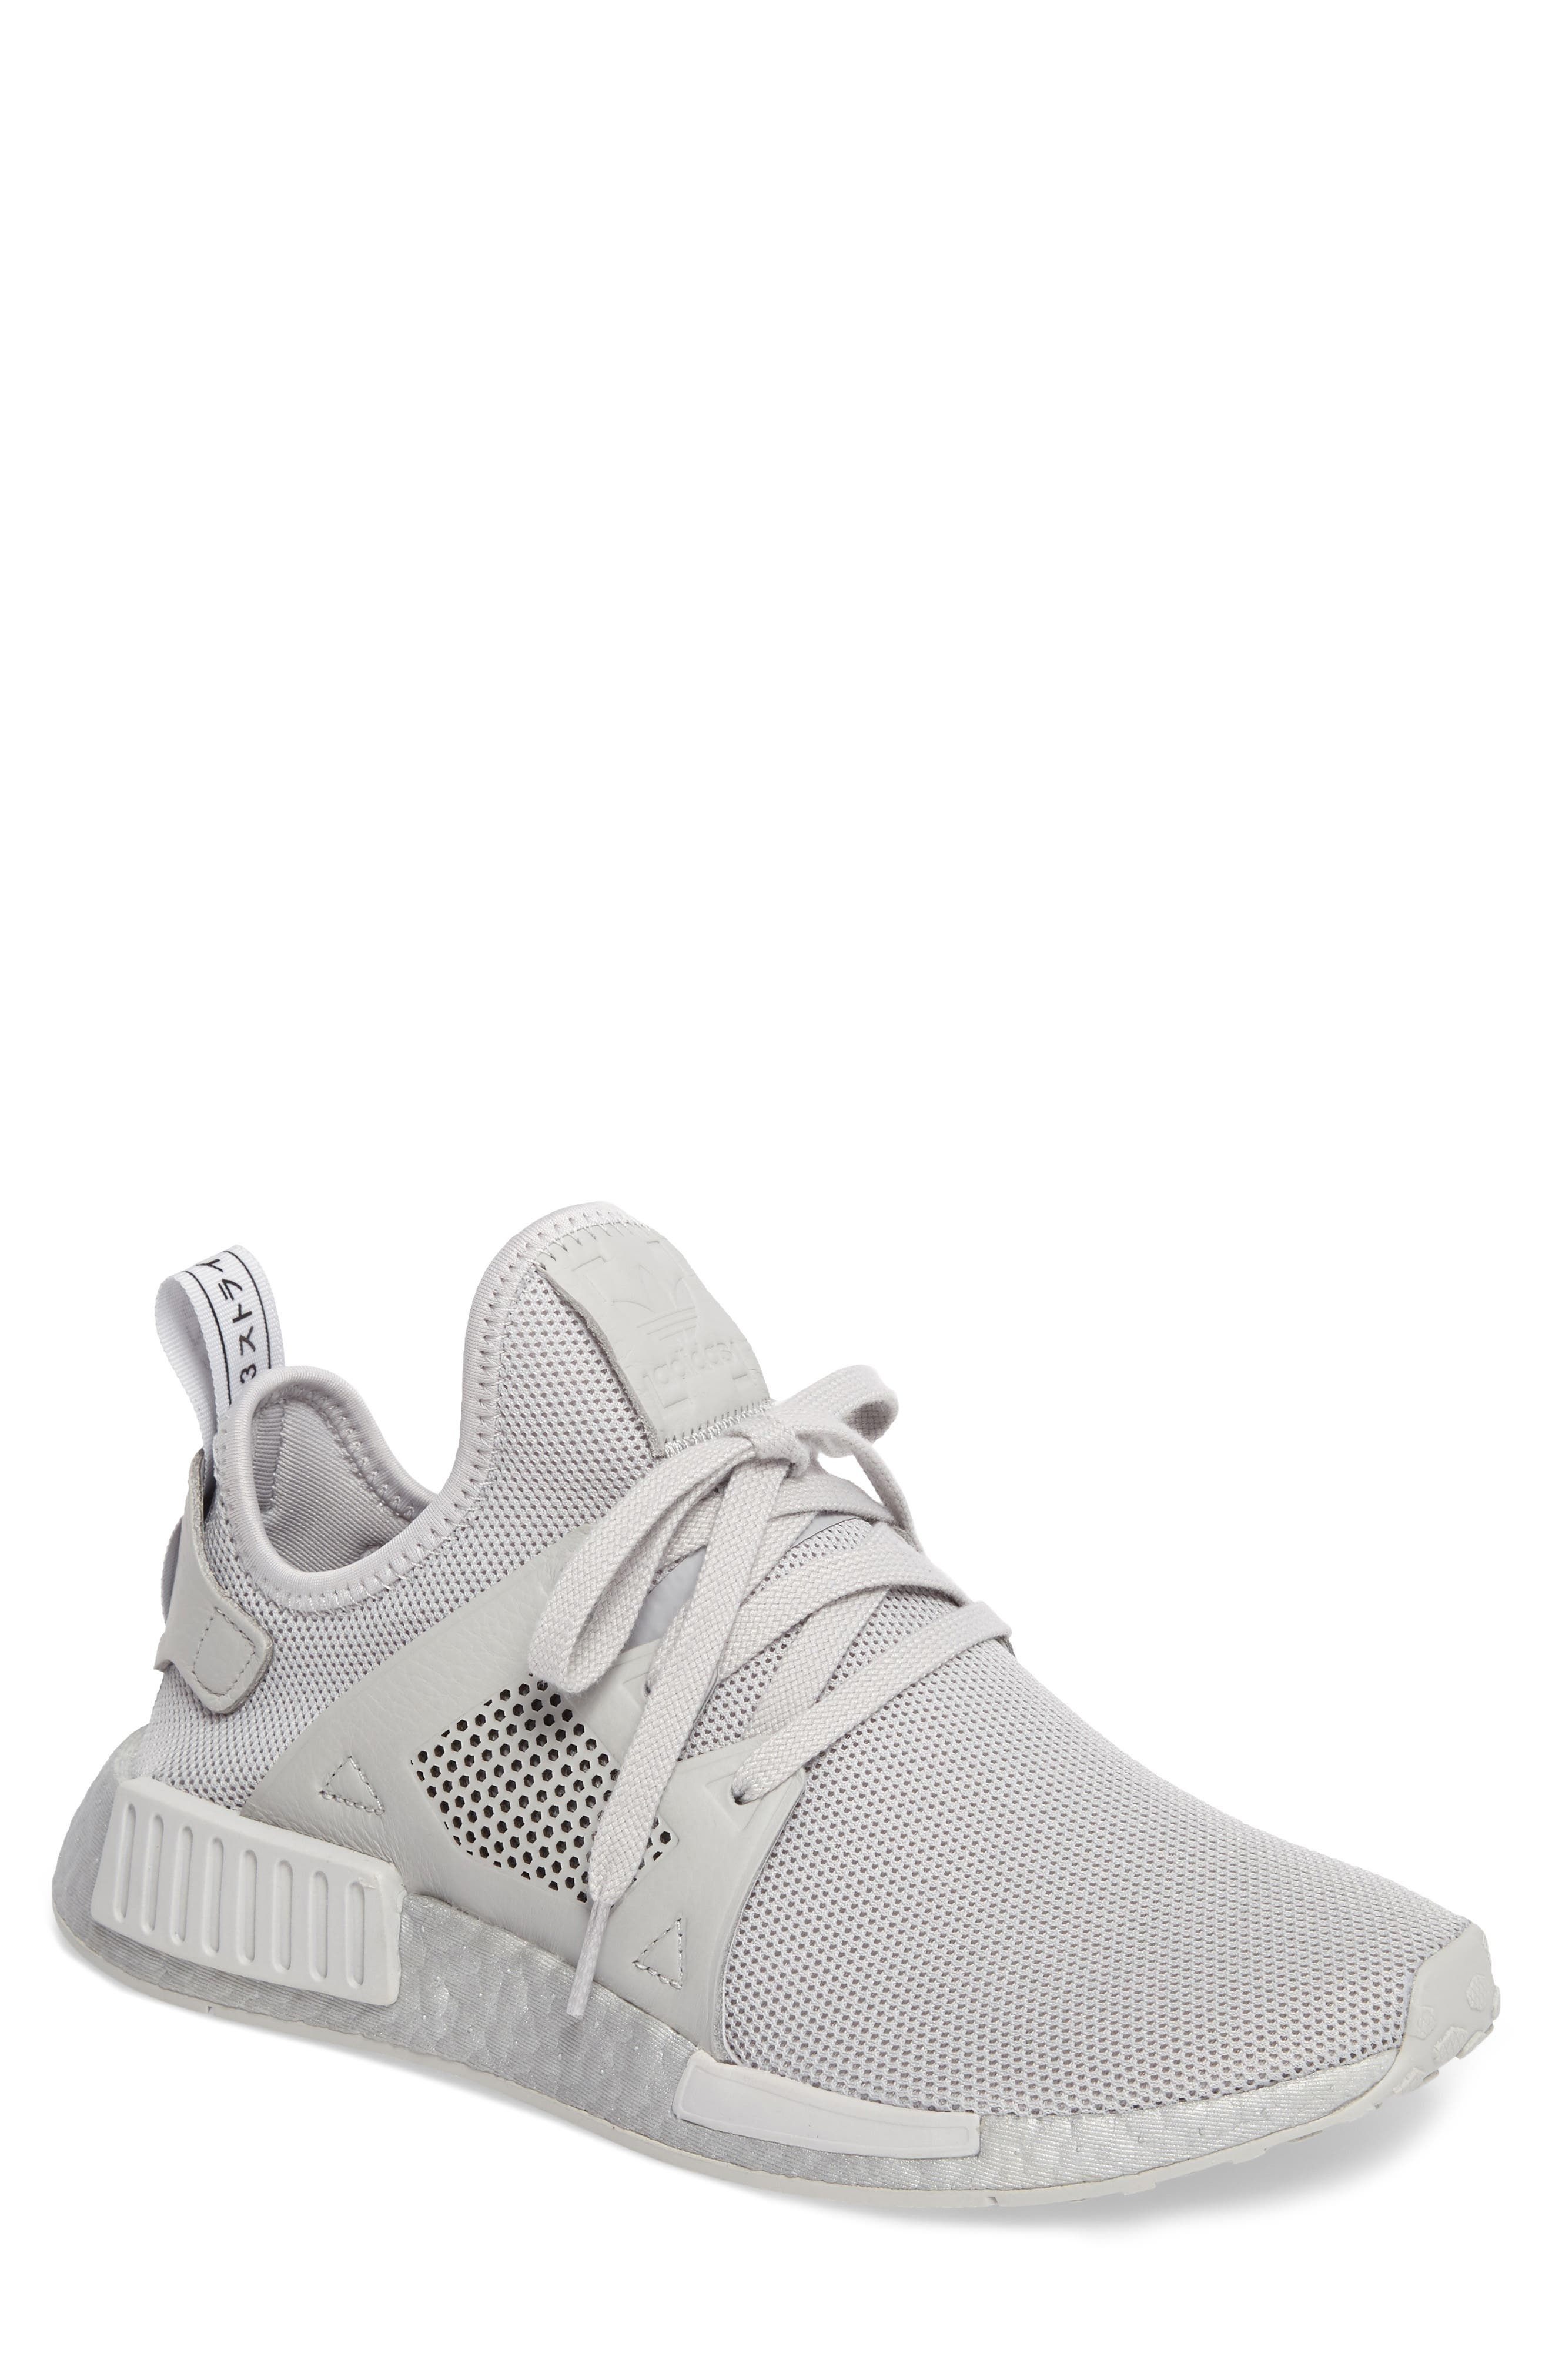 Alternate Image 1 Selected - adidas NMD XR1 Sneaker (Men)